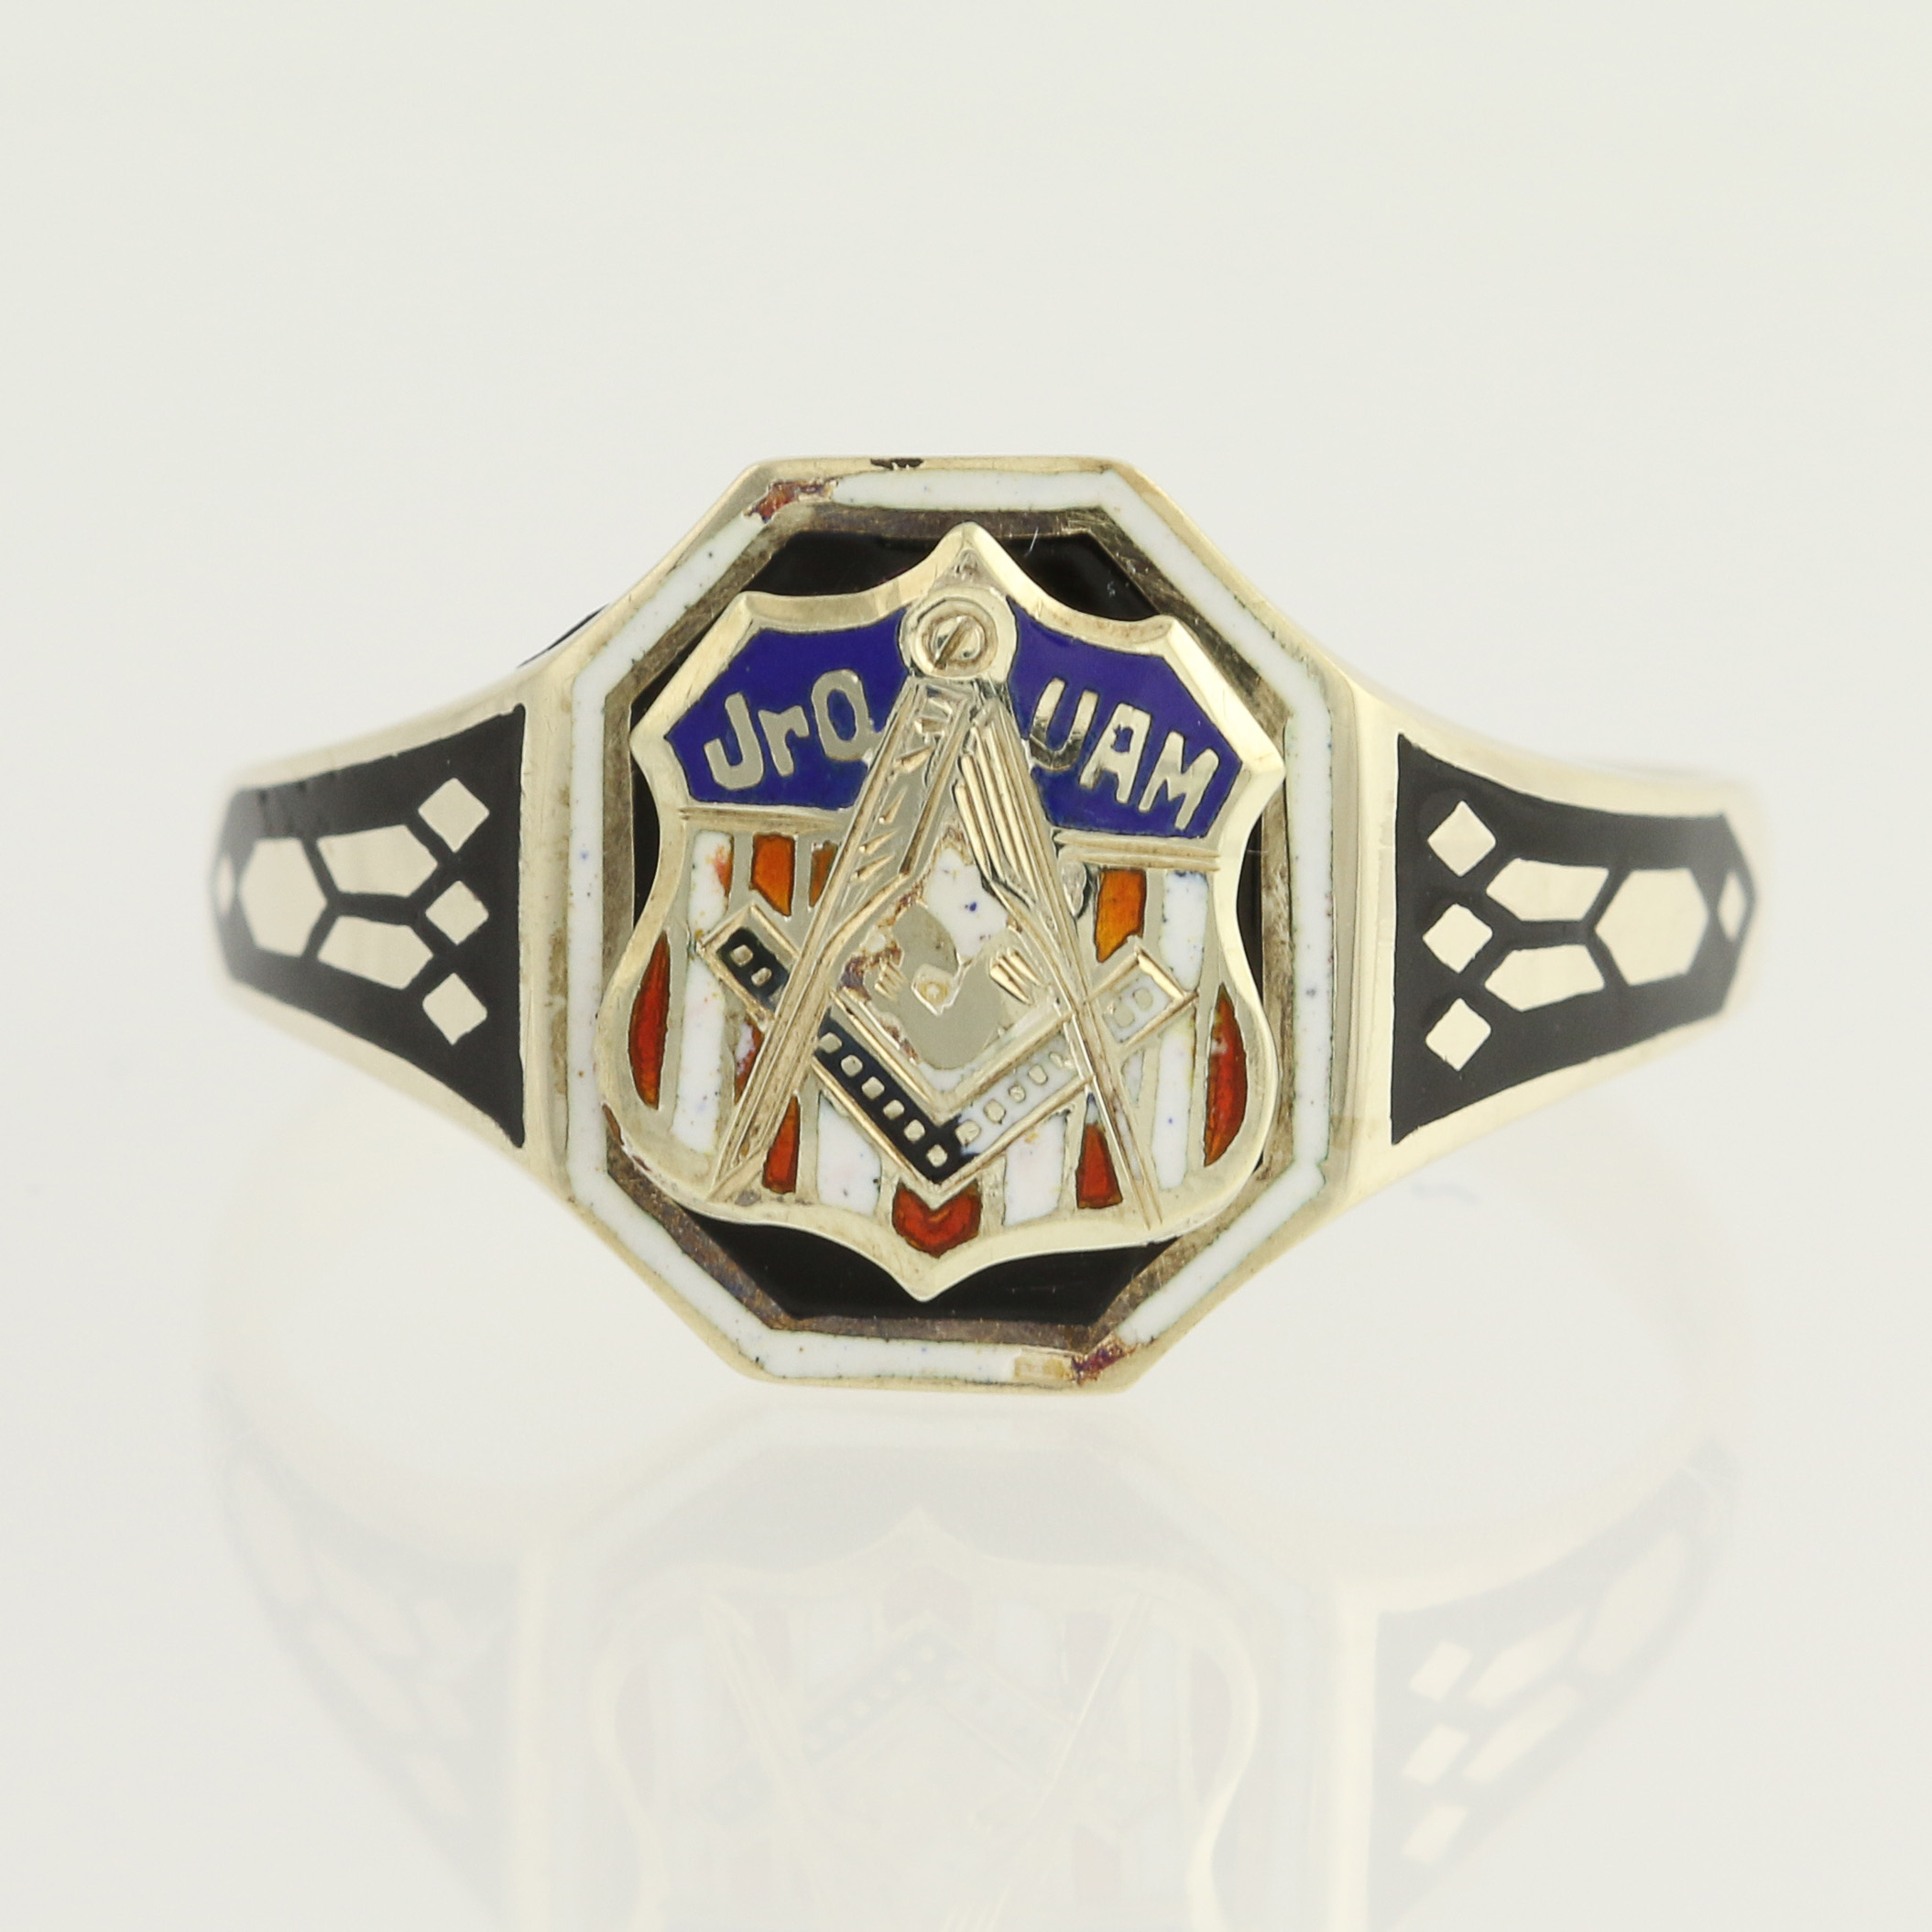 lodge diamonds ring crest platinum masonic thumbnails past blue gold rings to master enlarge click vintage itm